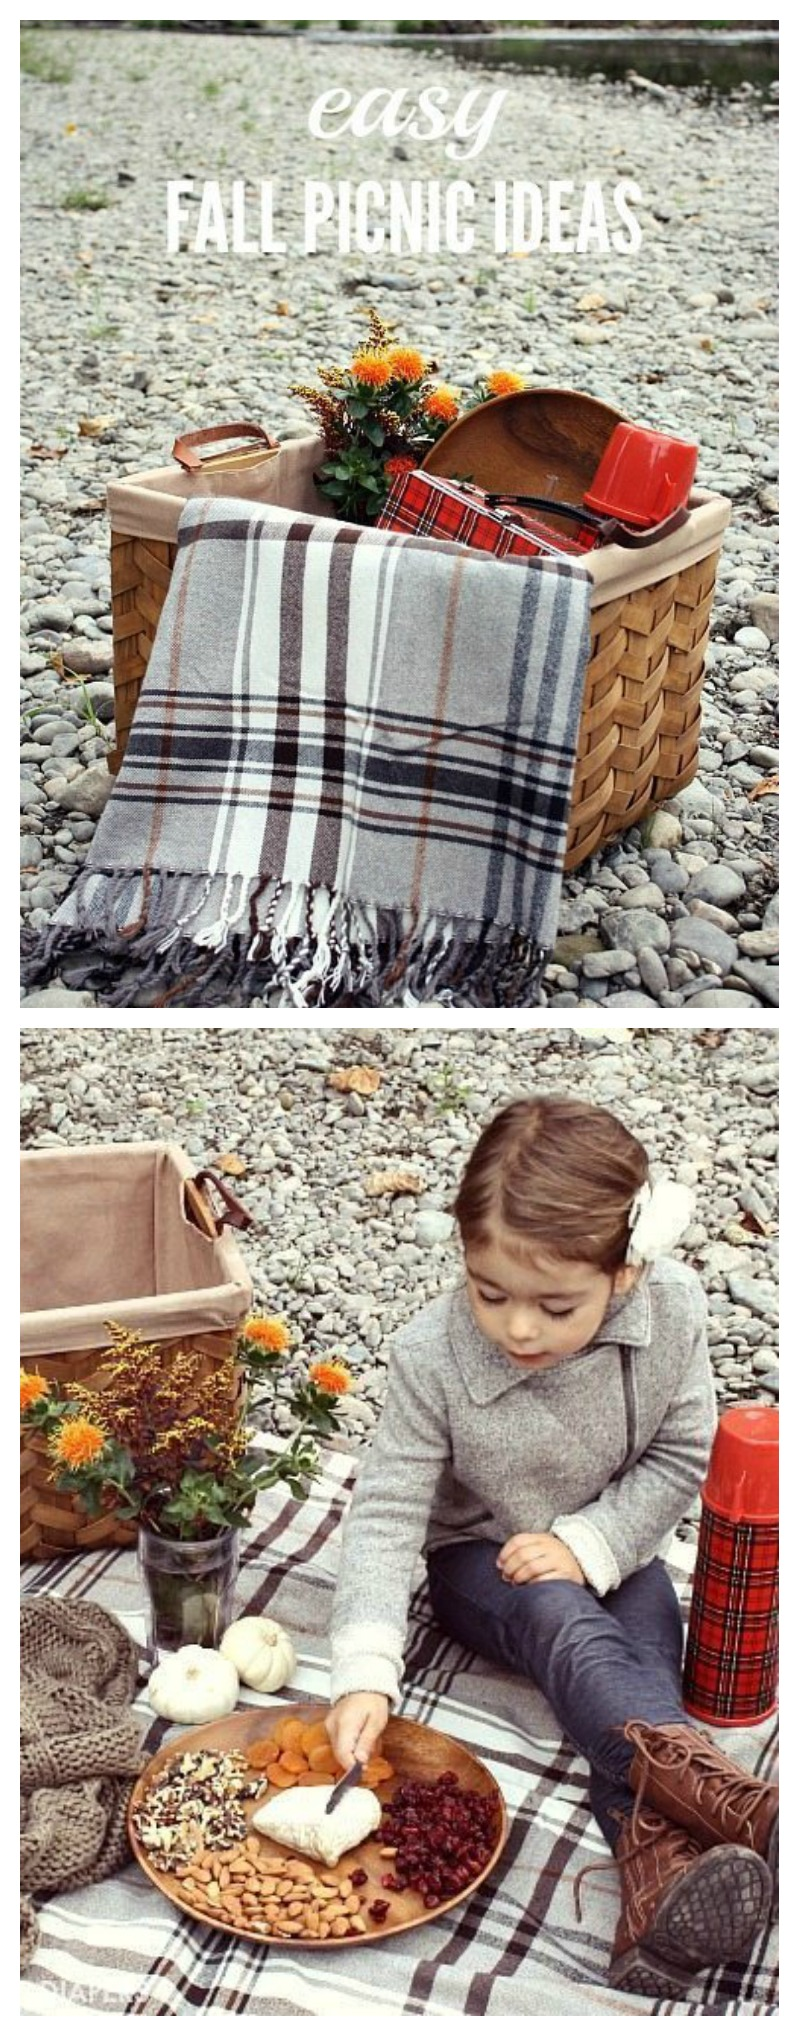 Love these easy fall picnic ideas! It doesn't take much to put together a picnic for your family or special date.